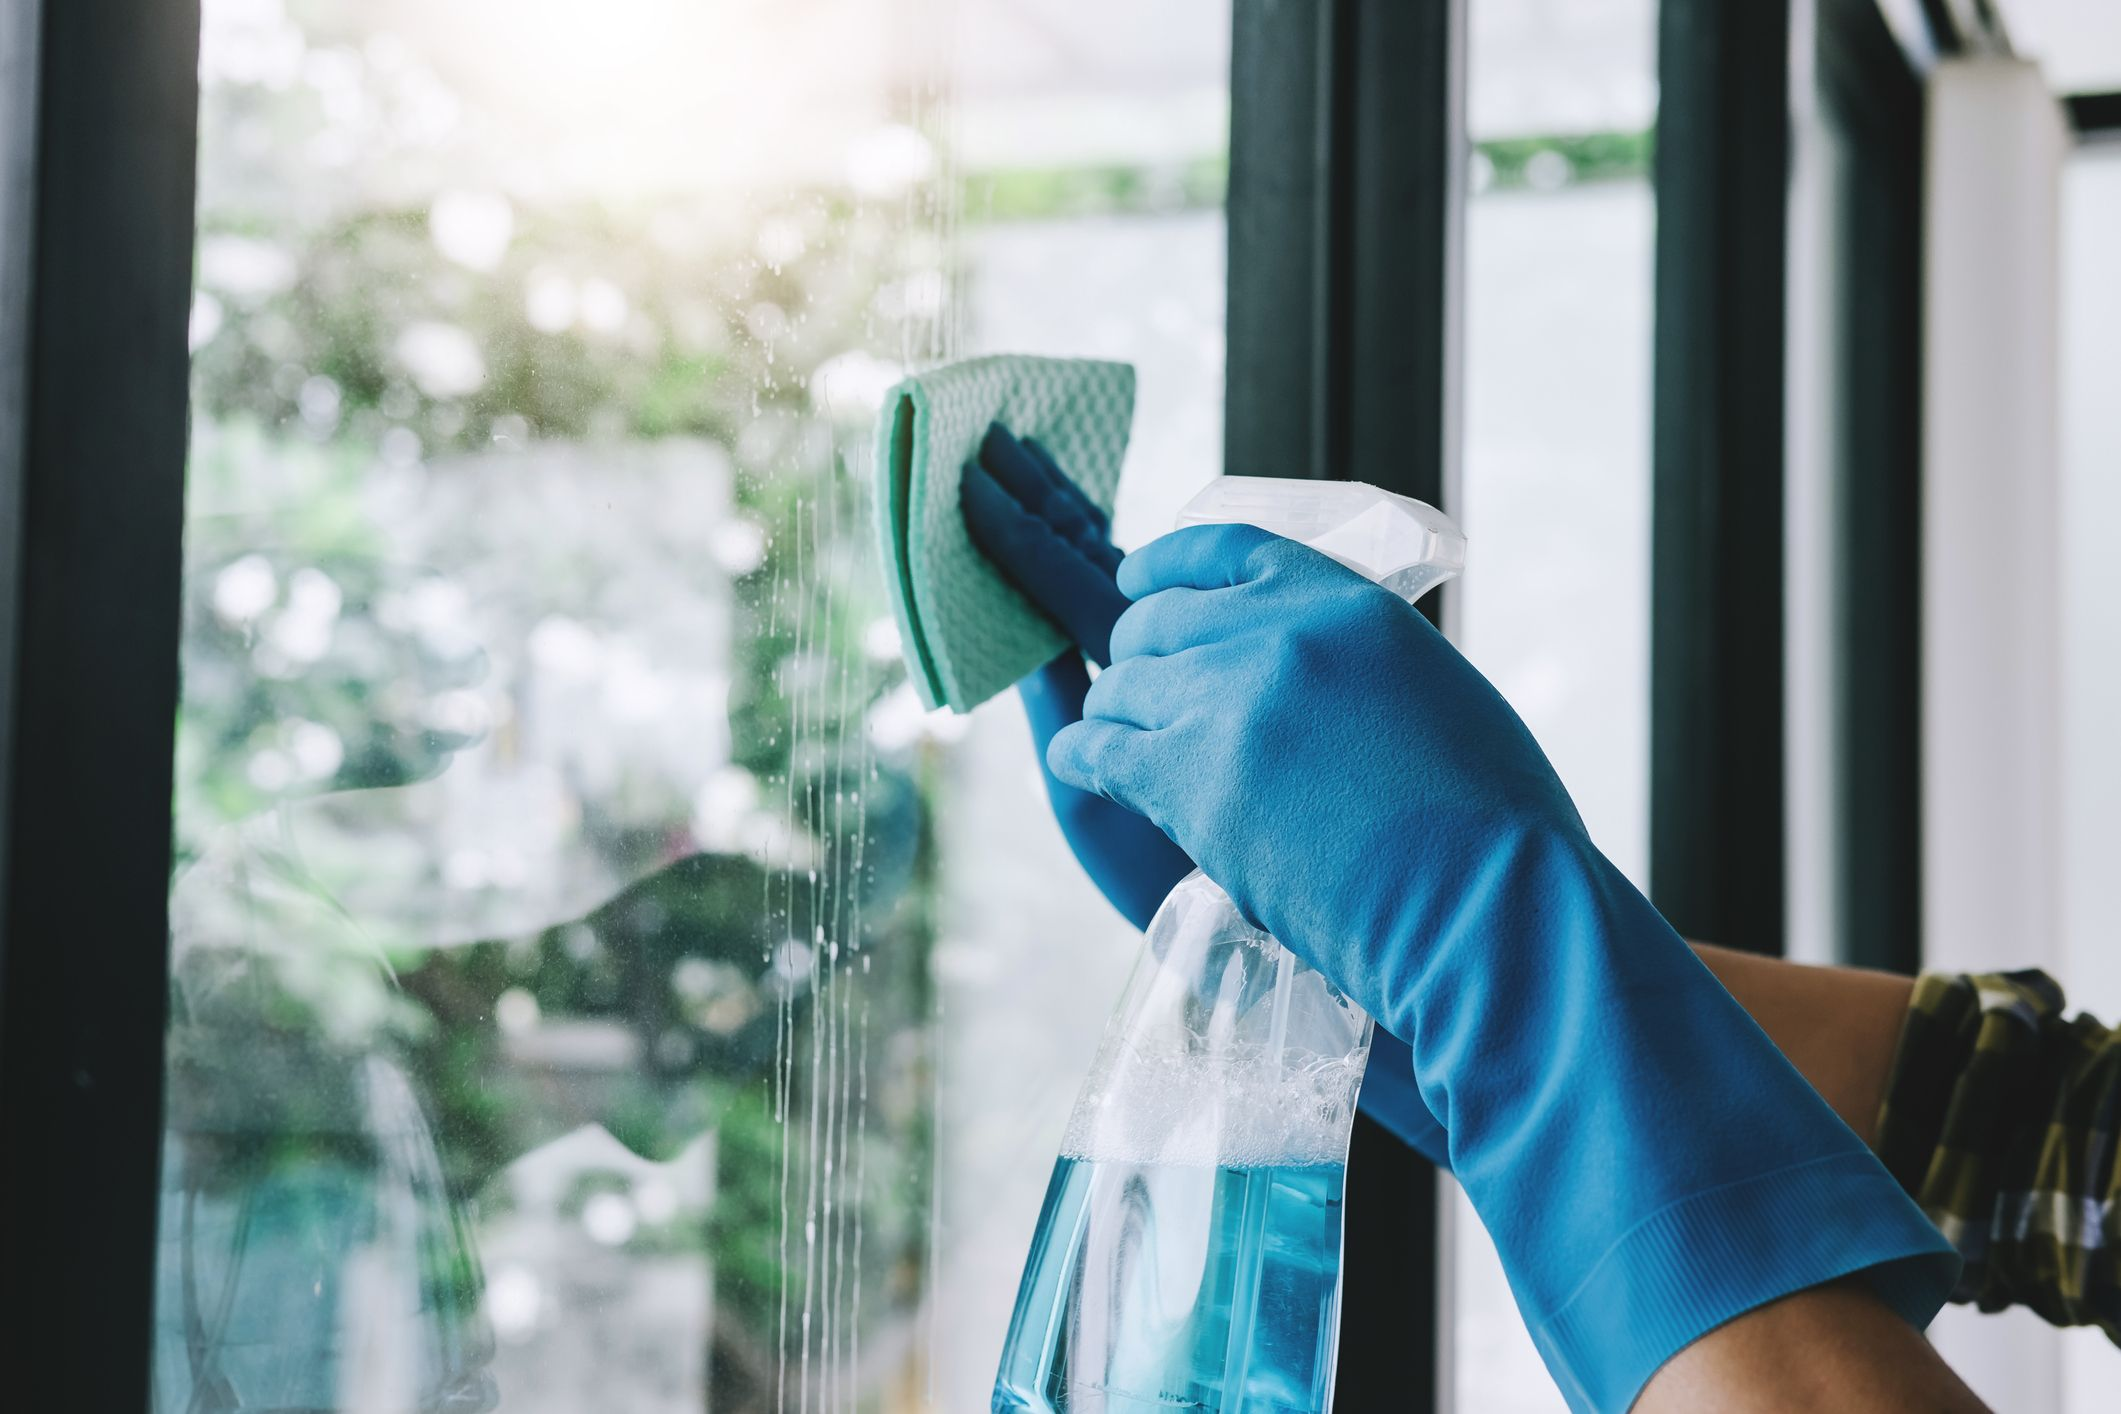 The Fabric Softener Cleaning Hack That Leaves Glass Smear Free